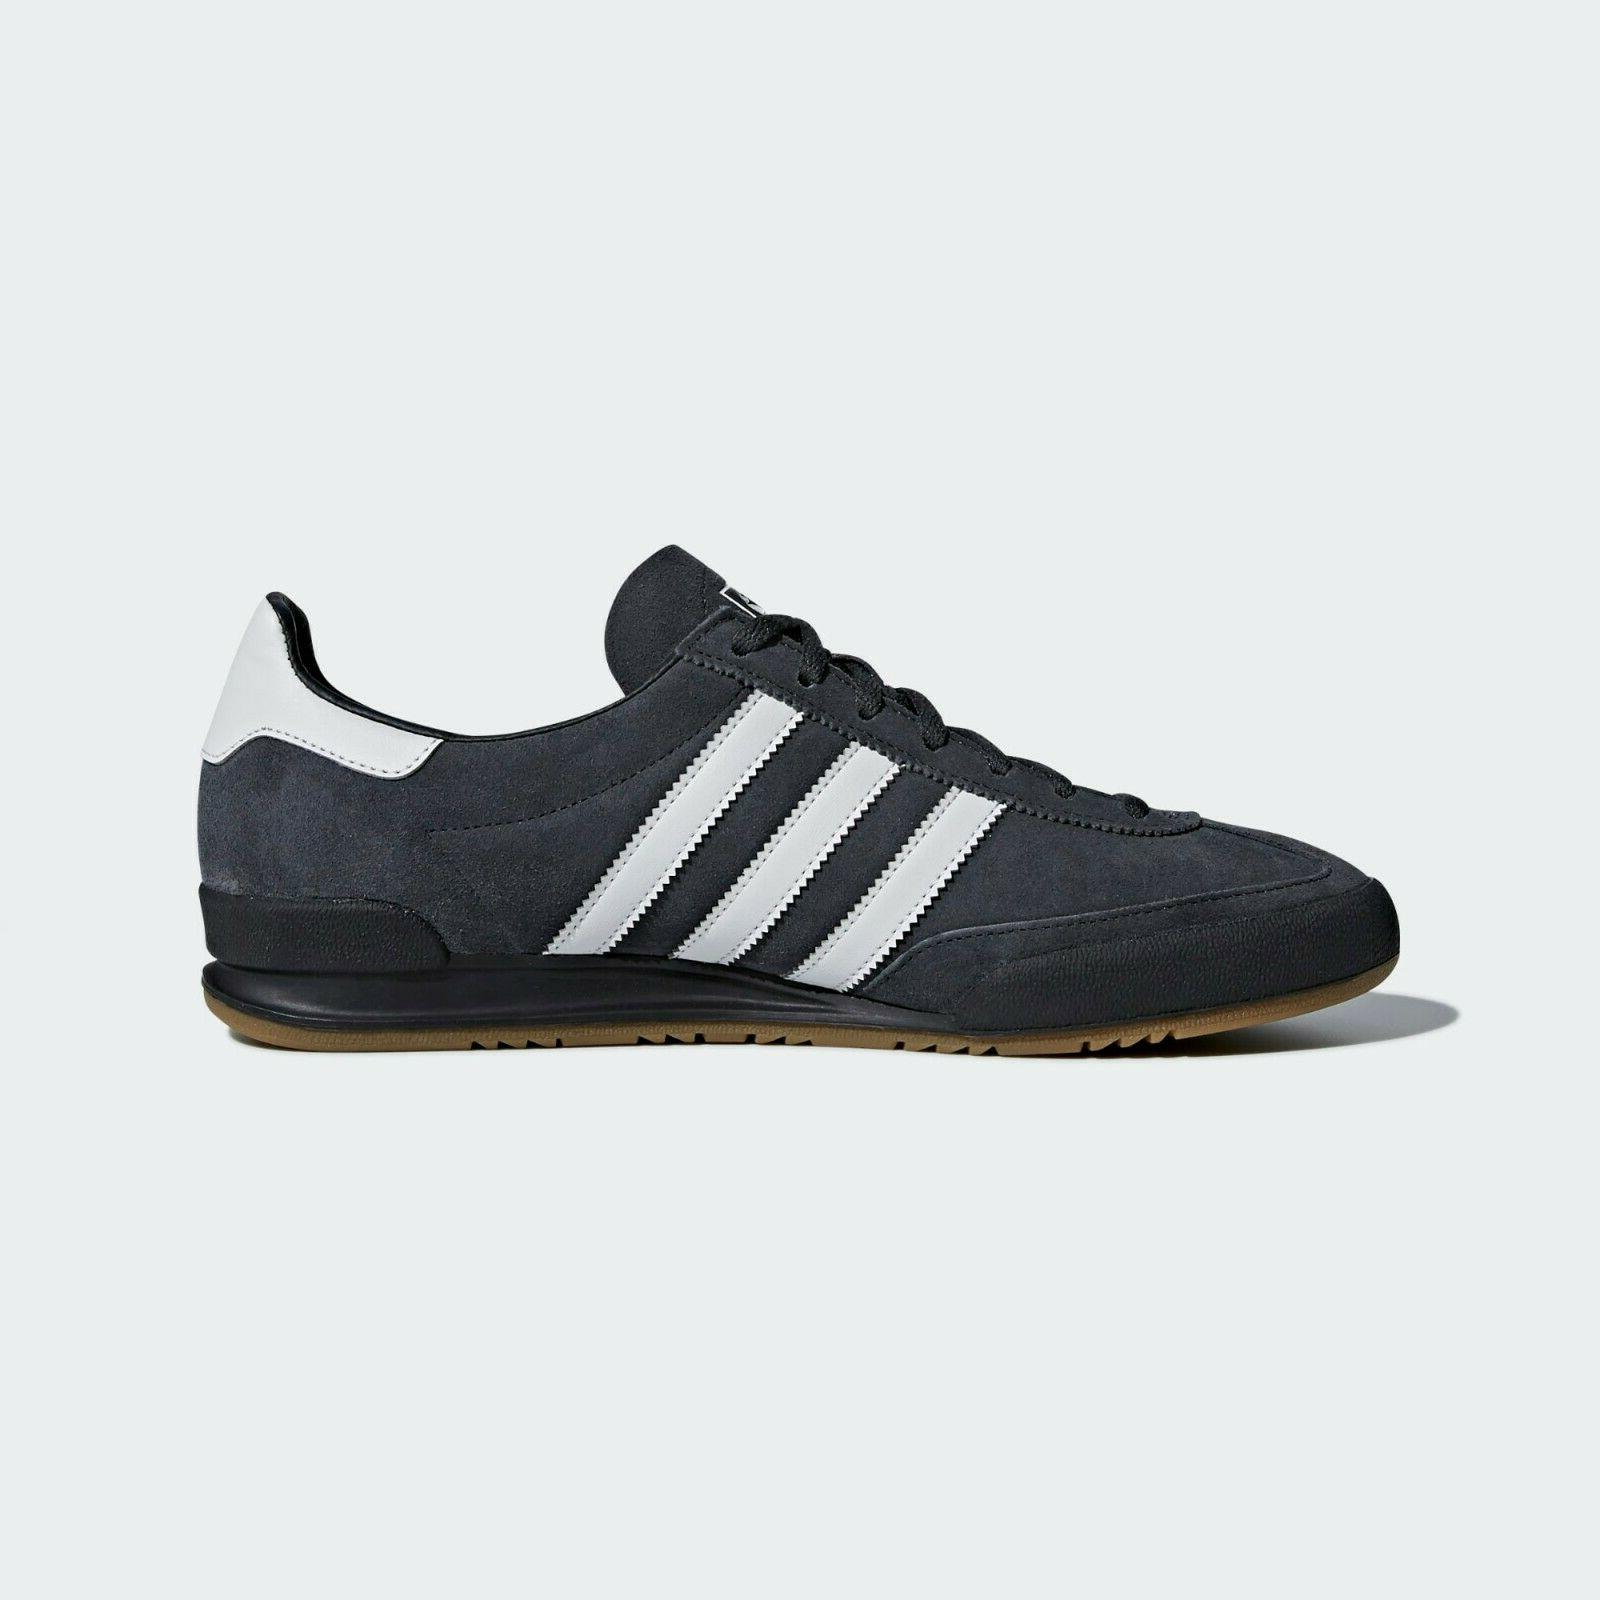 Adidas Originals Trainers Shoes Carbon Grey